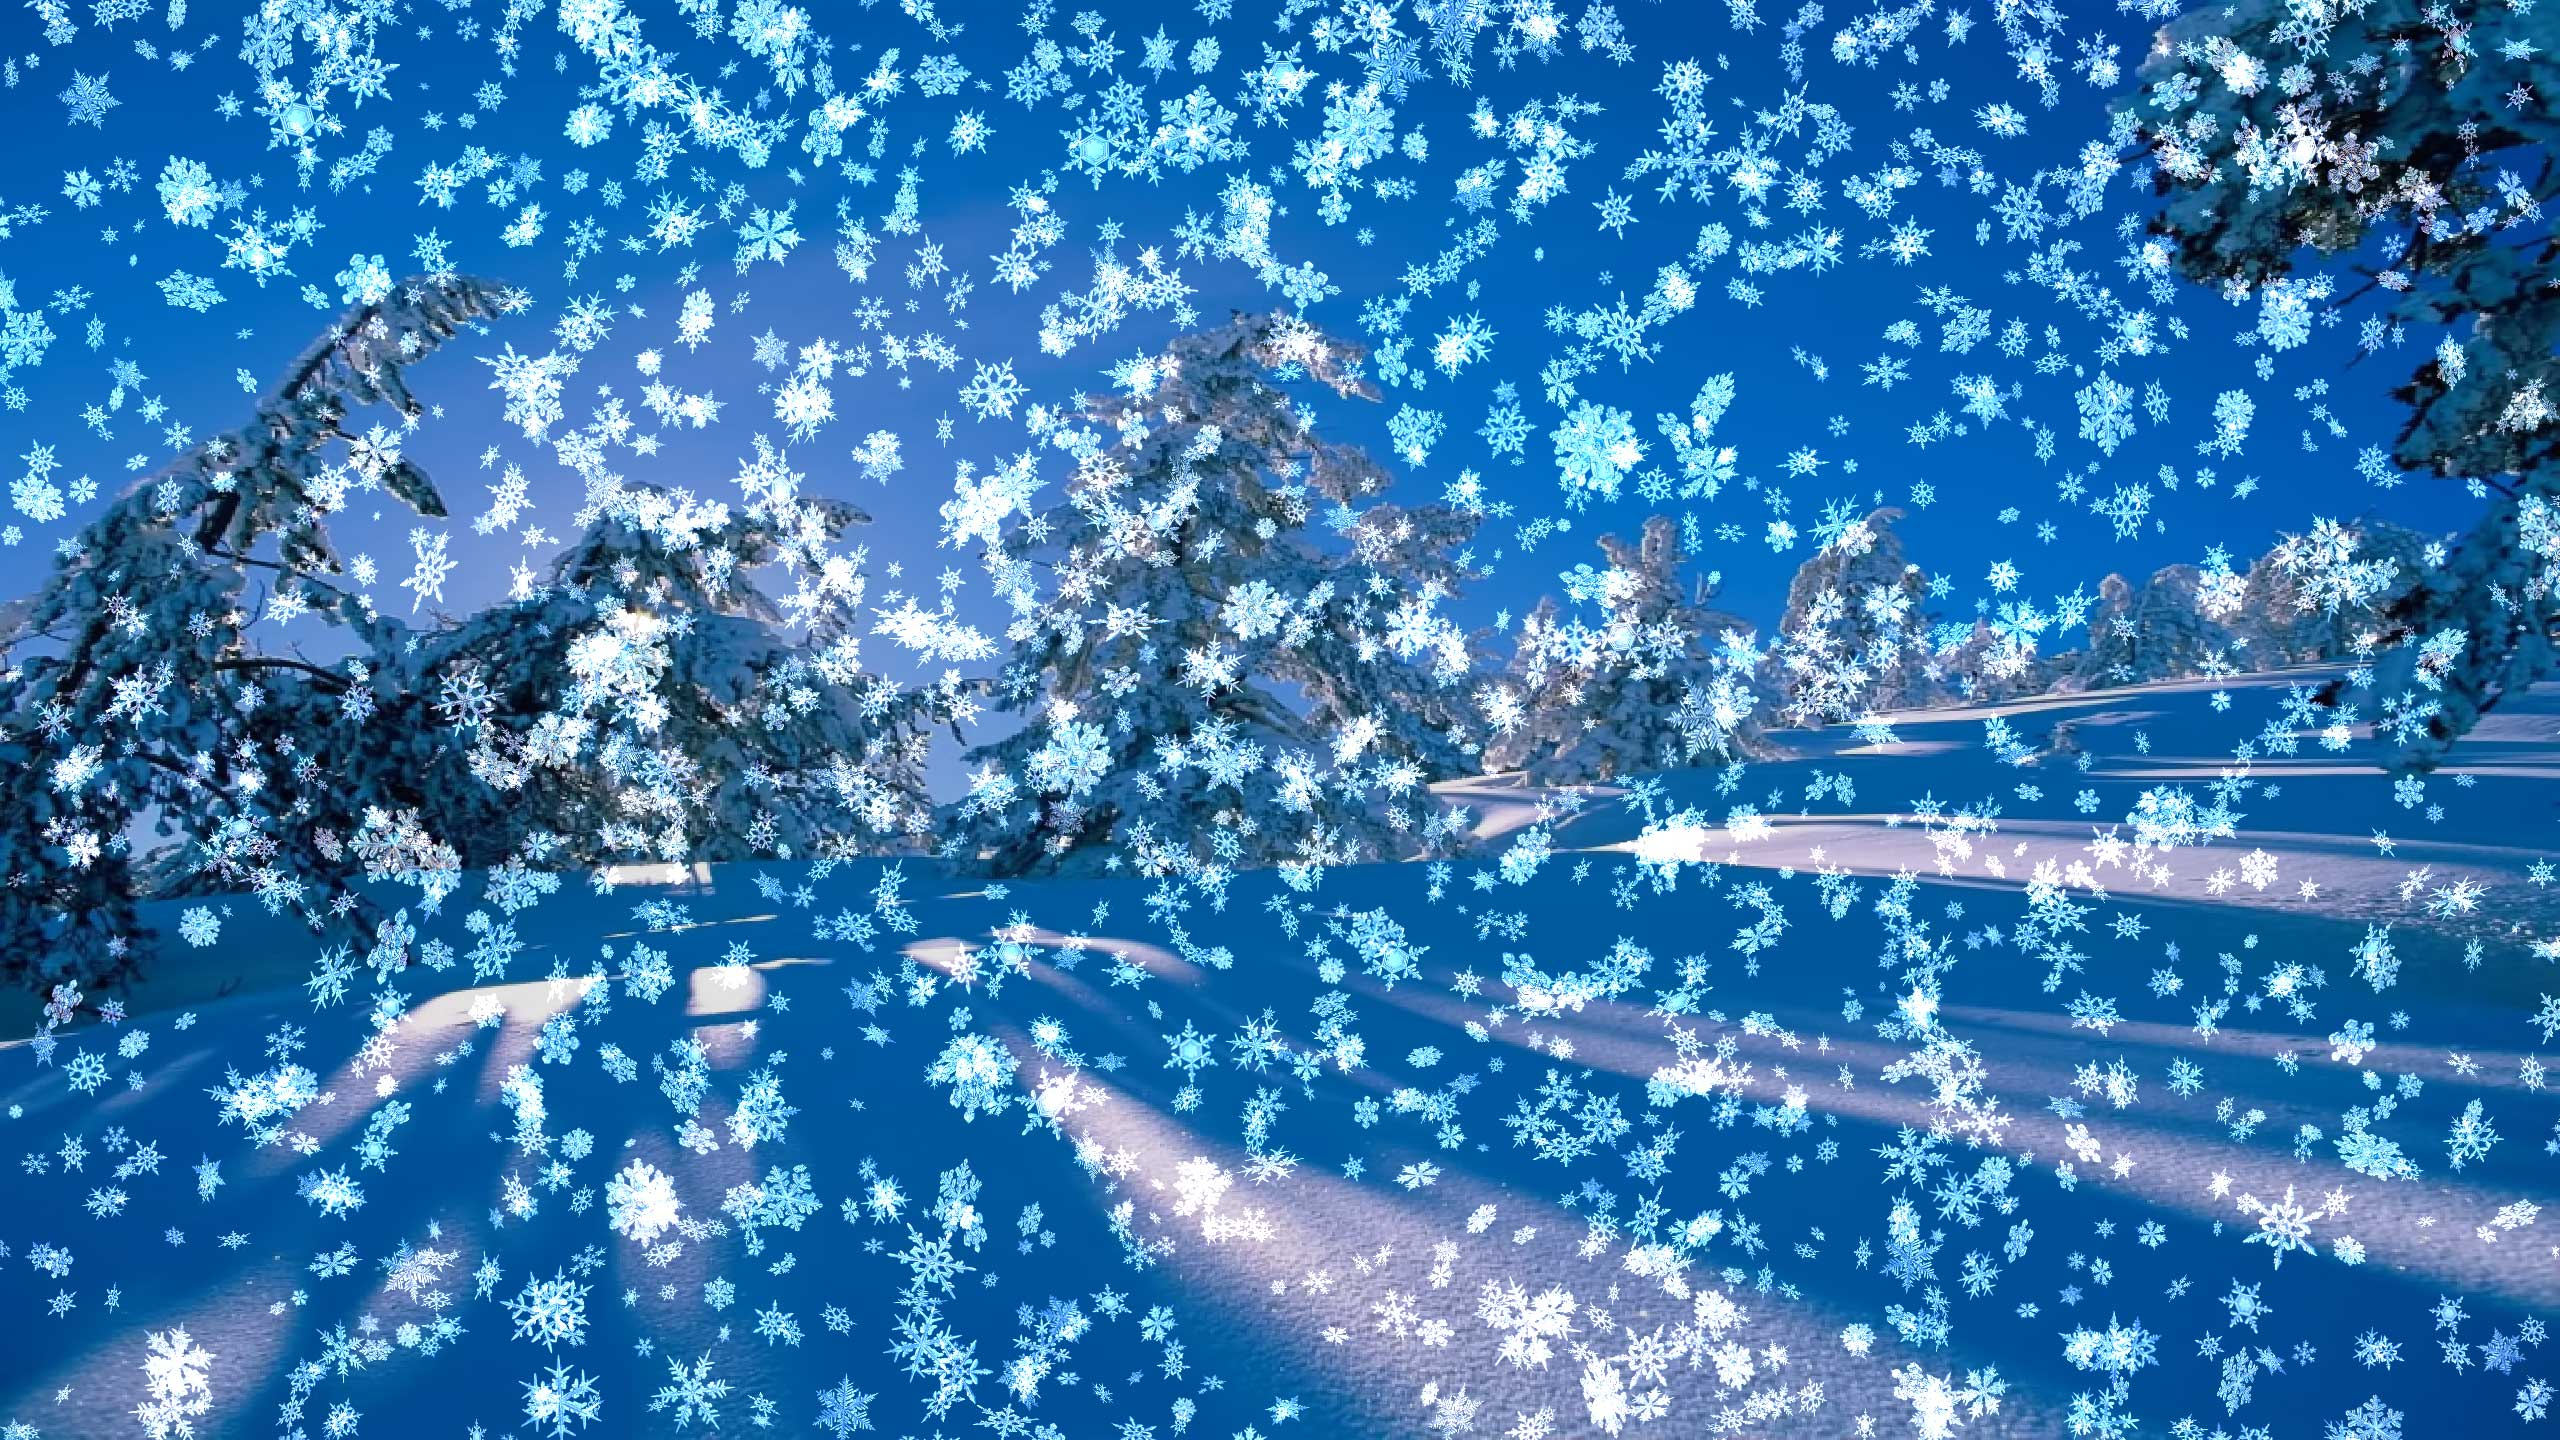 3 39536 animated live wallpaper hd for pc moving winter